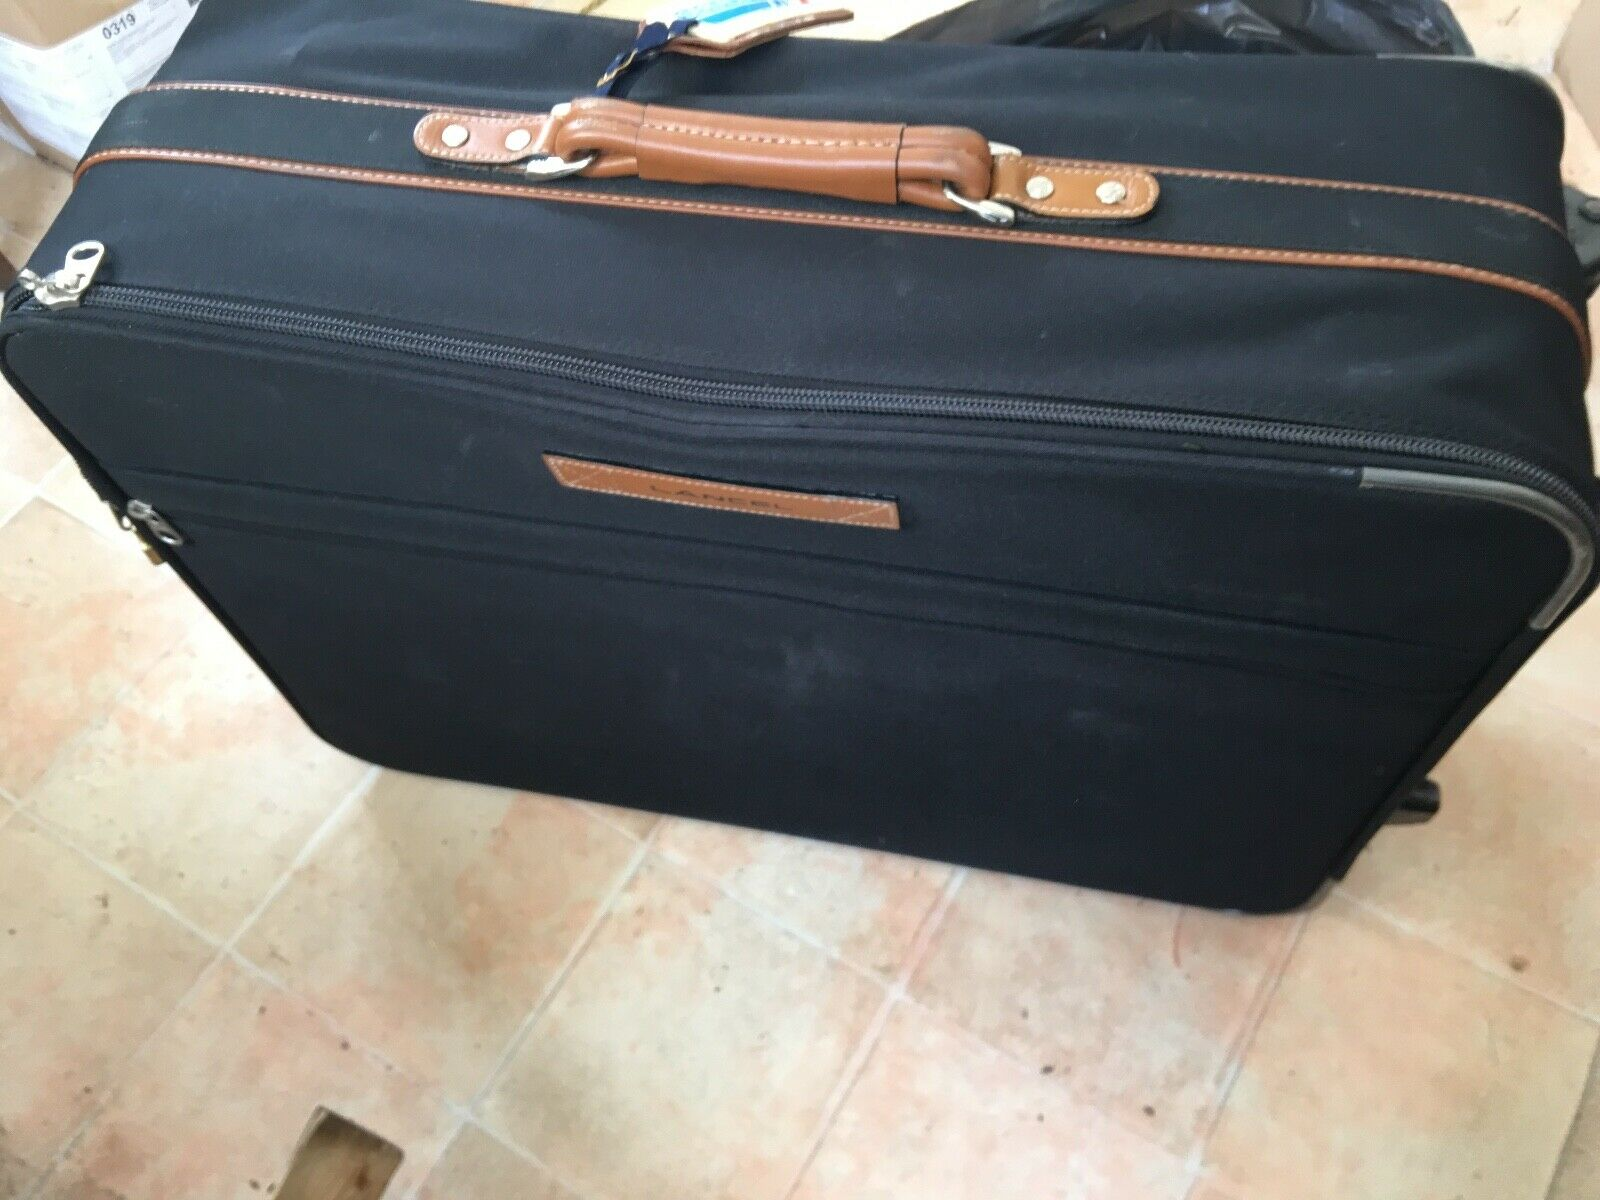 Valise lancel authentique